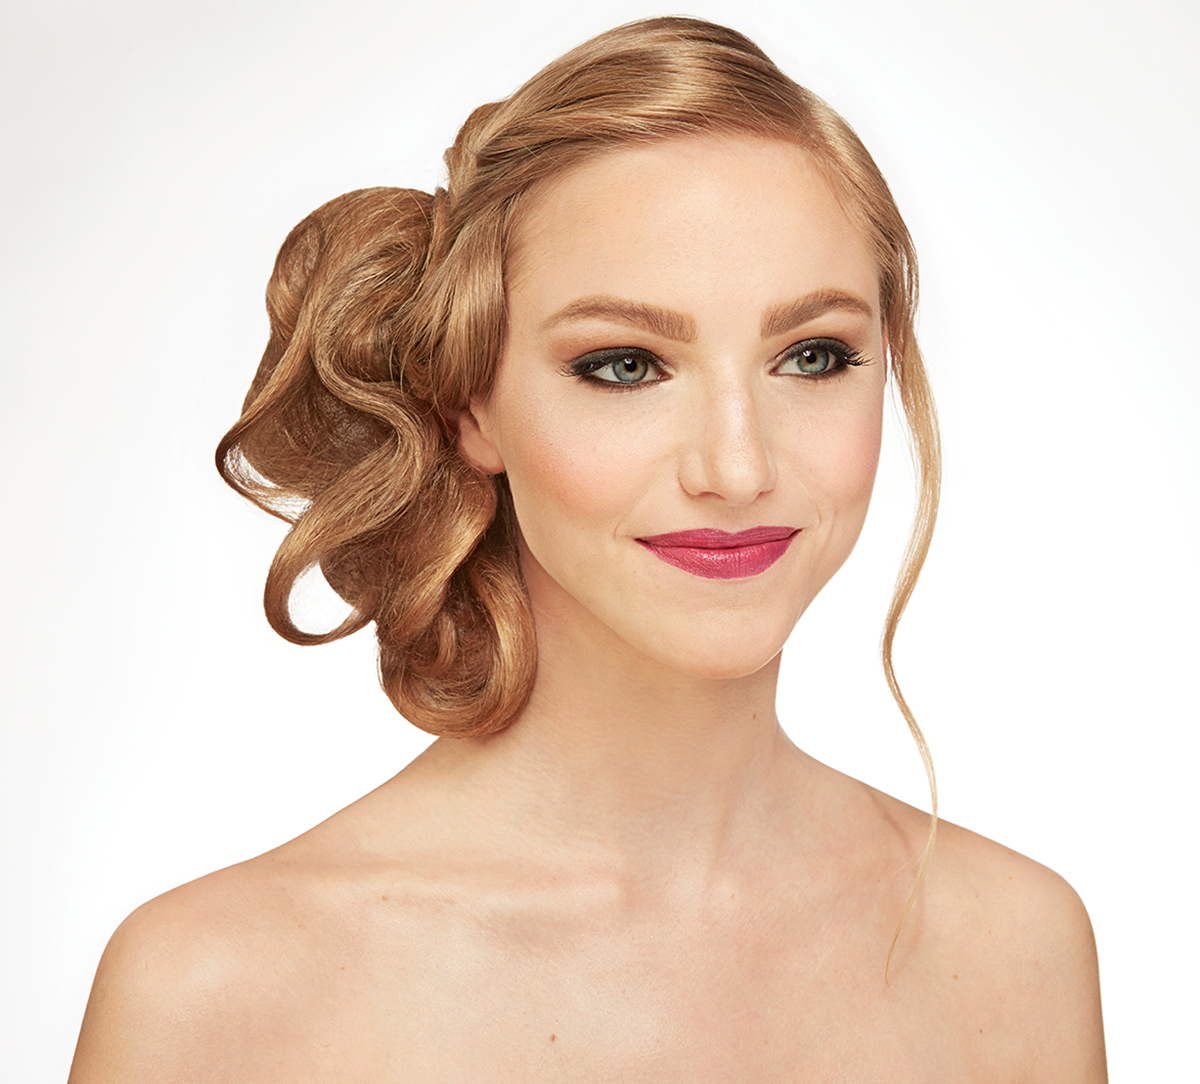 Wedding Day Makeup Ideas: About Face: Day-to-Night Wedding Makeup Tips